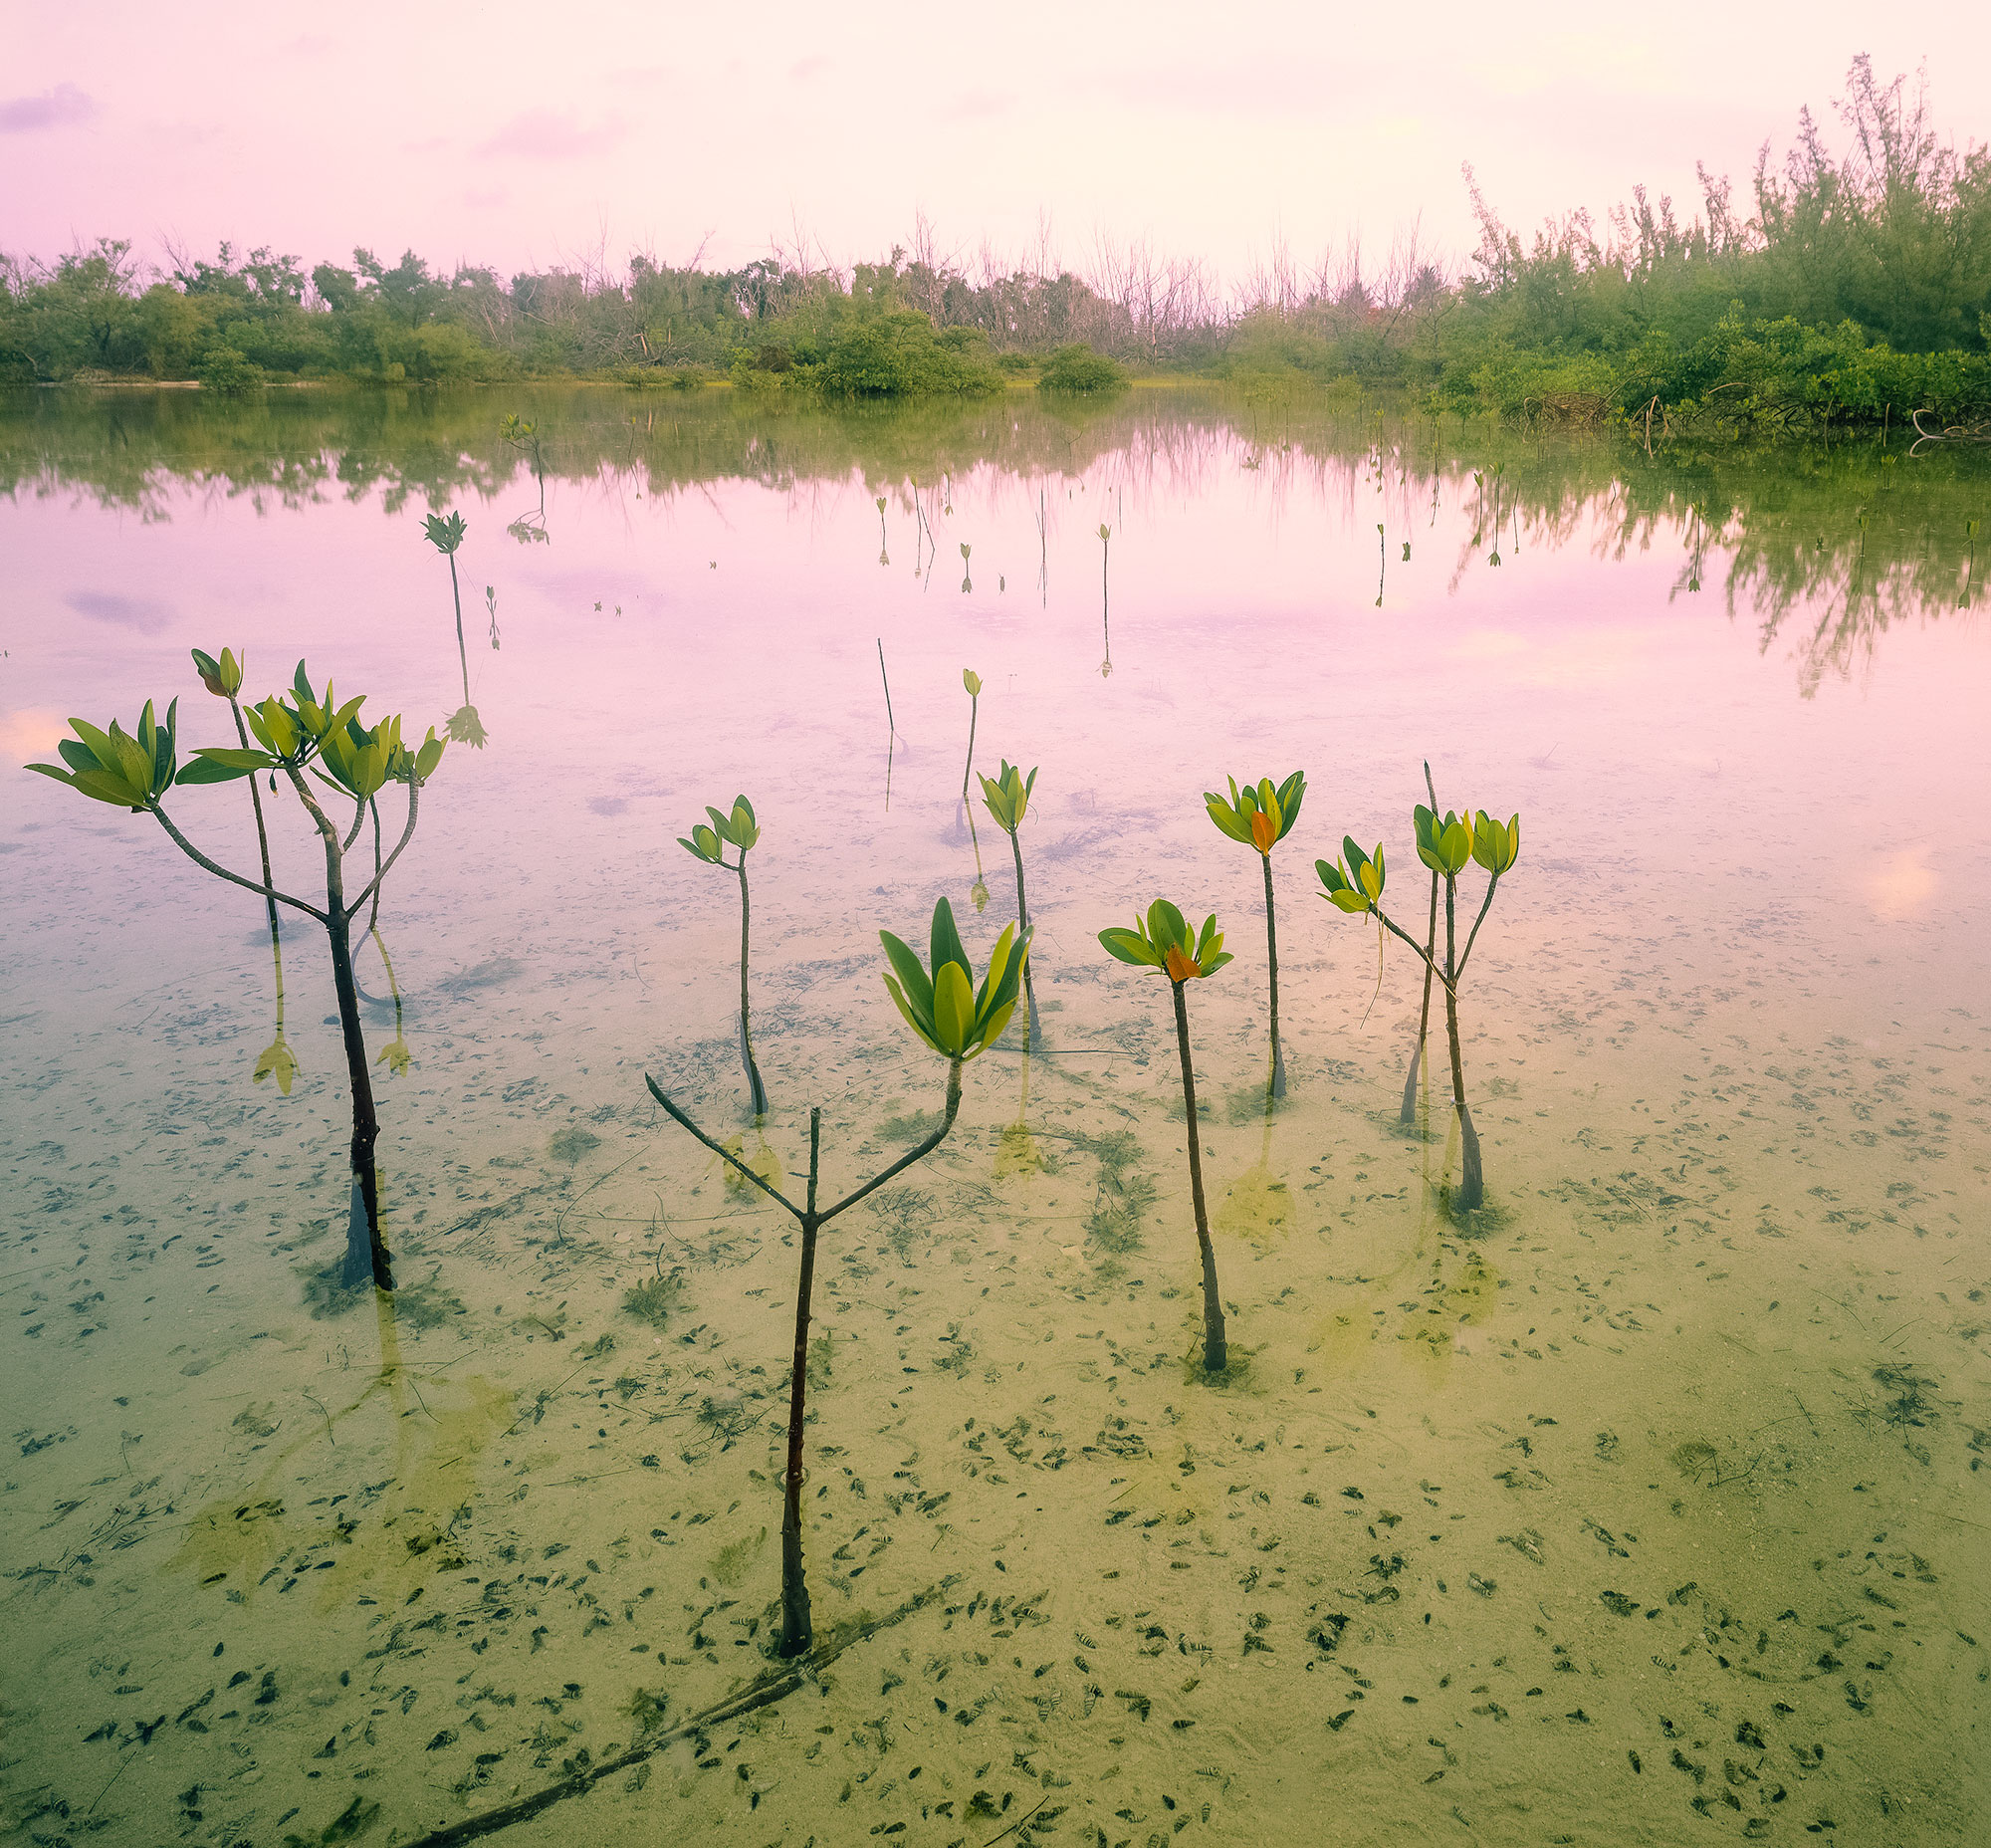 Mangroves in the Abacos